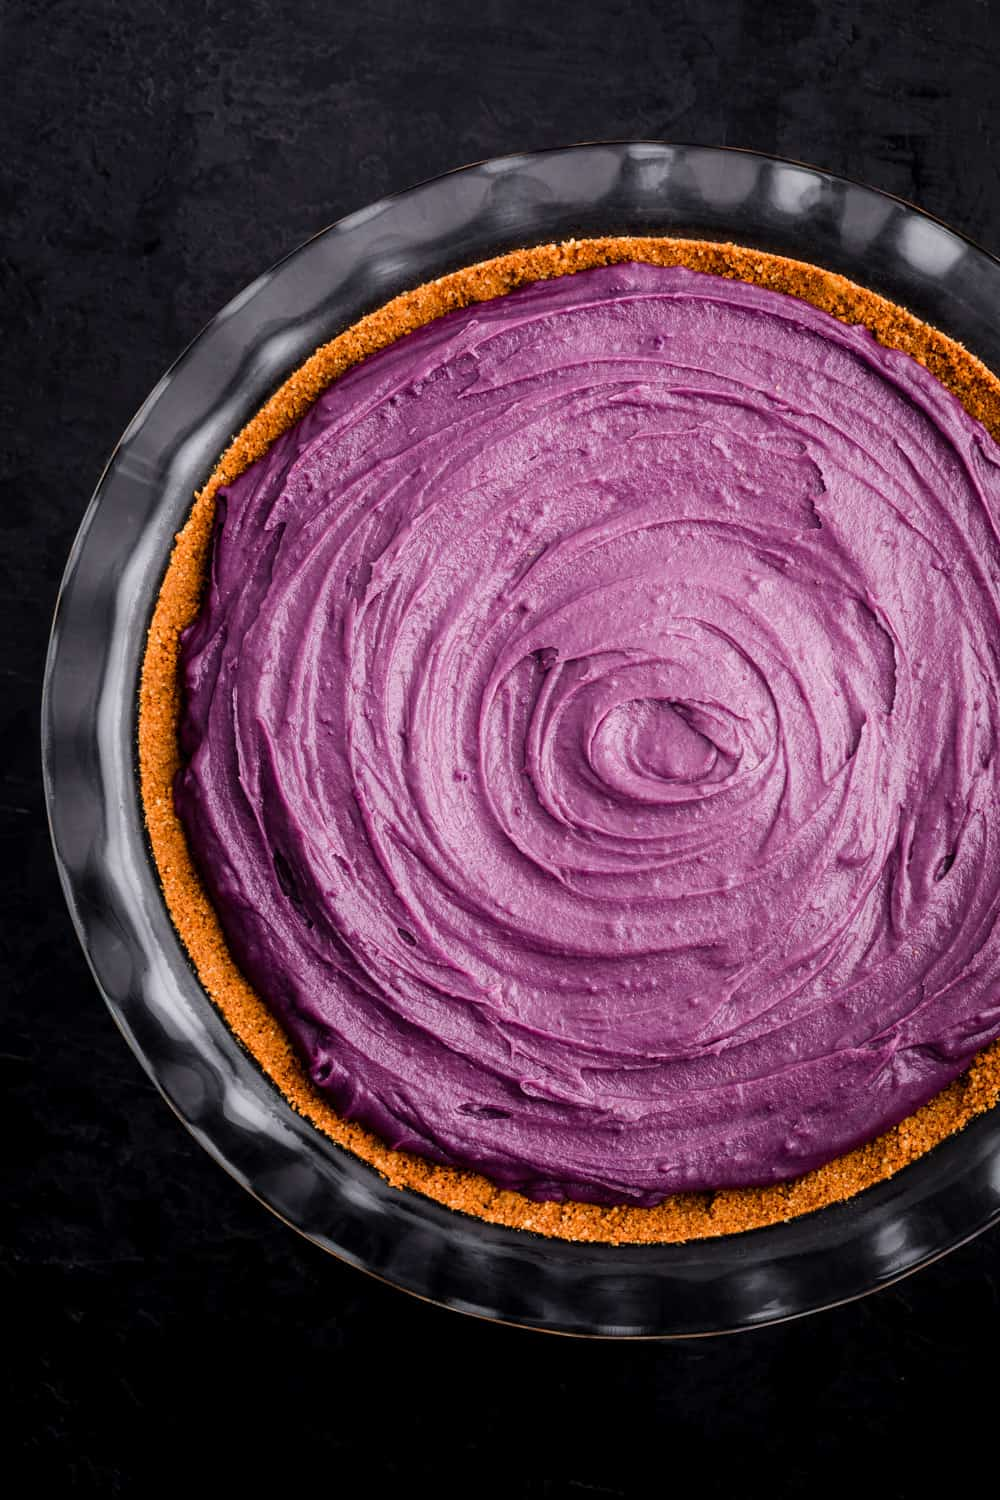 Purple sweet potato pie all ready to be baked in oven; filling has been poured into pie crust onto a pie plate; overhead shot on a black background.